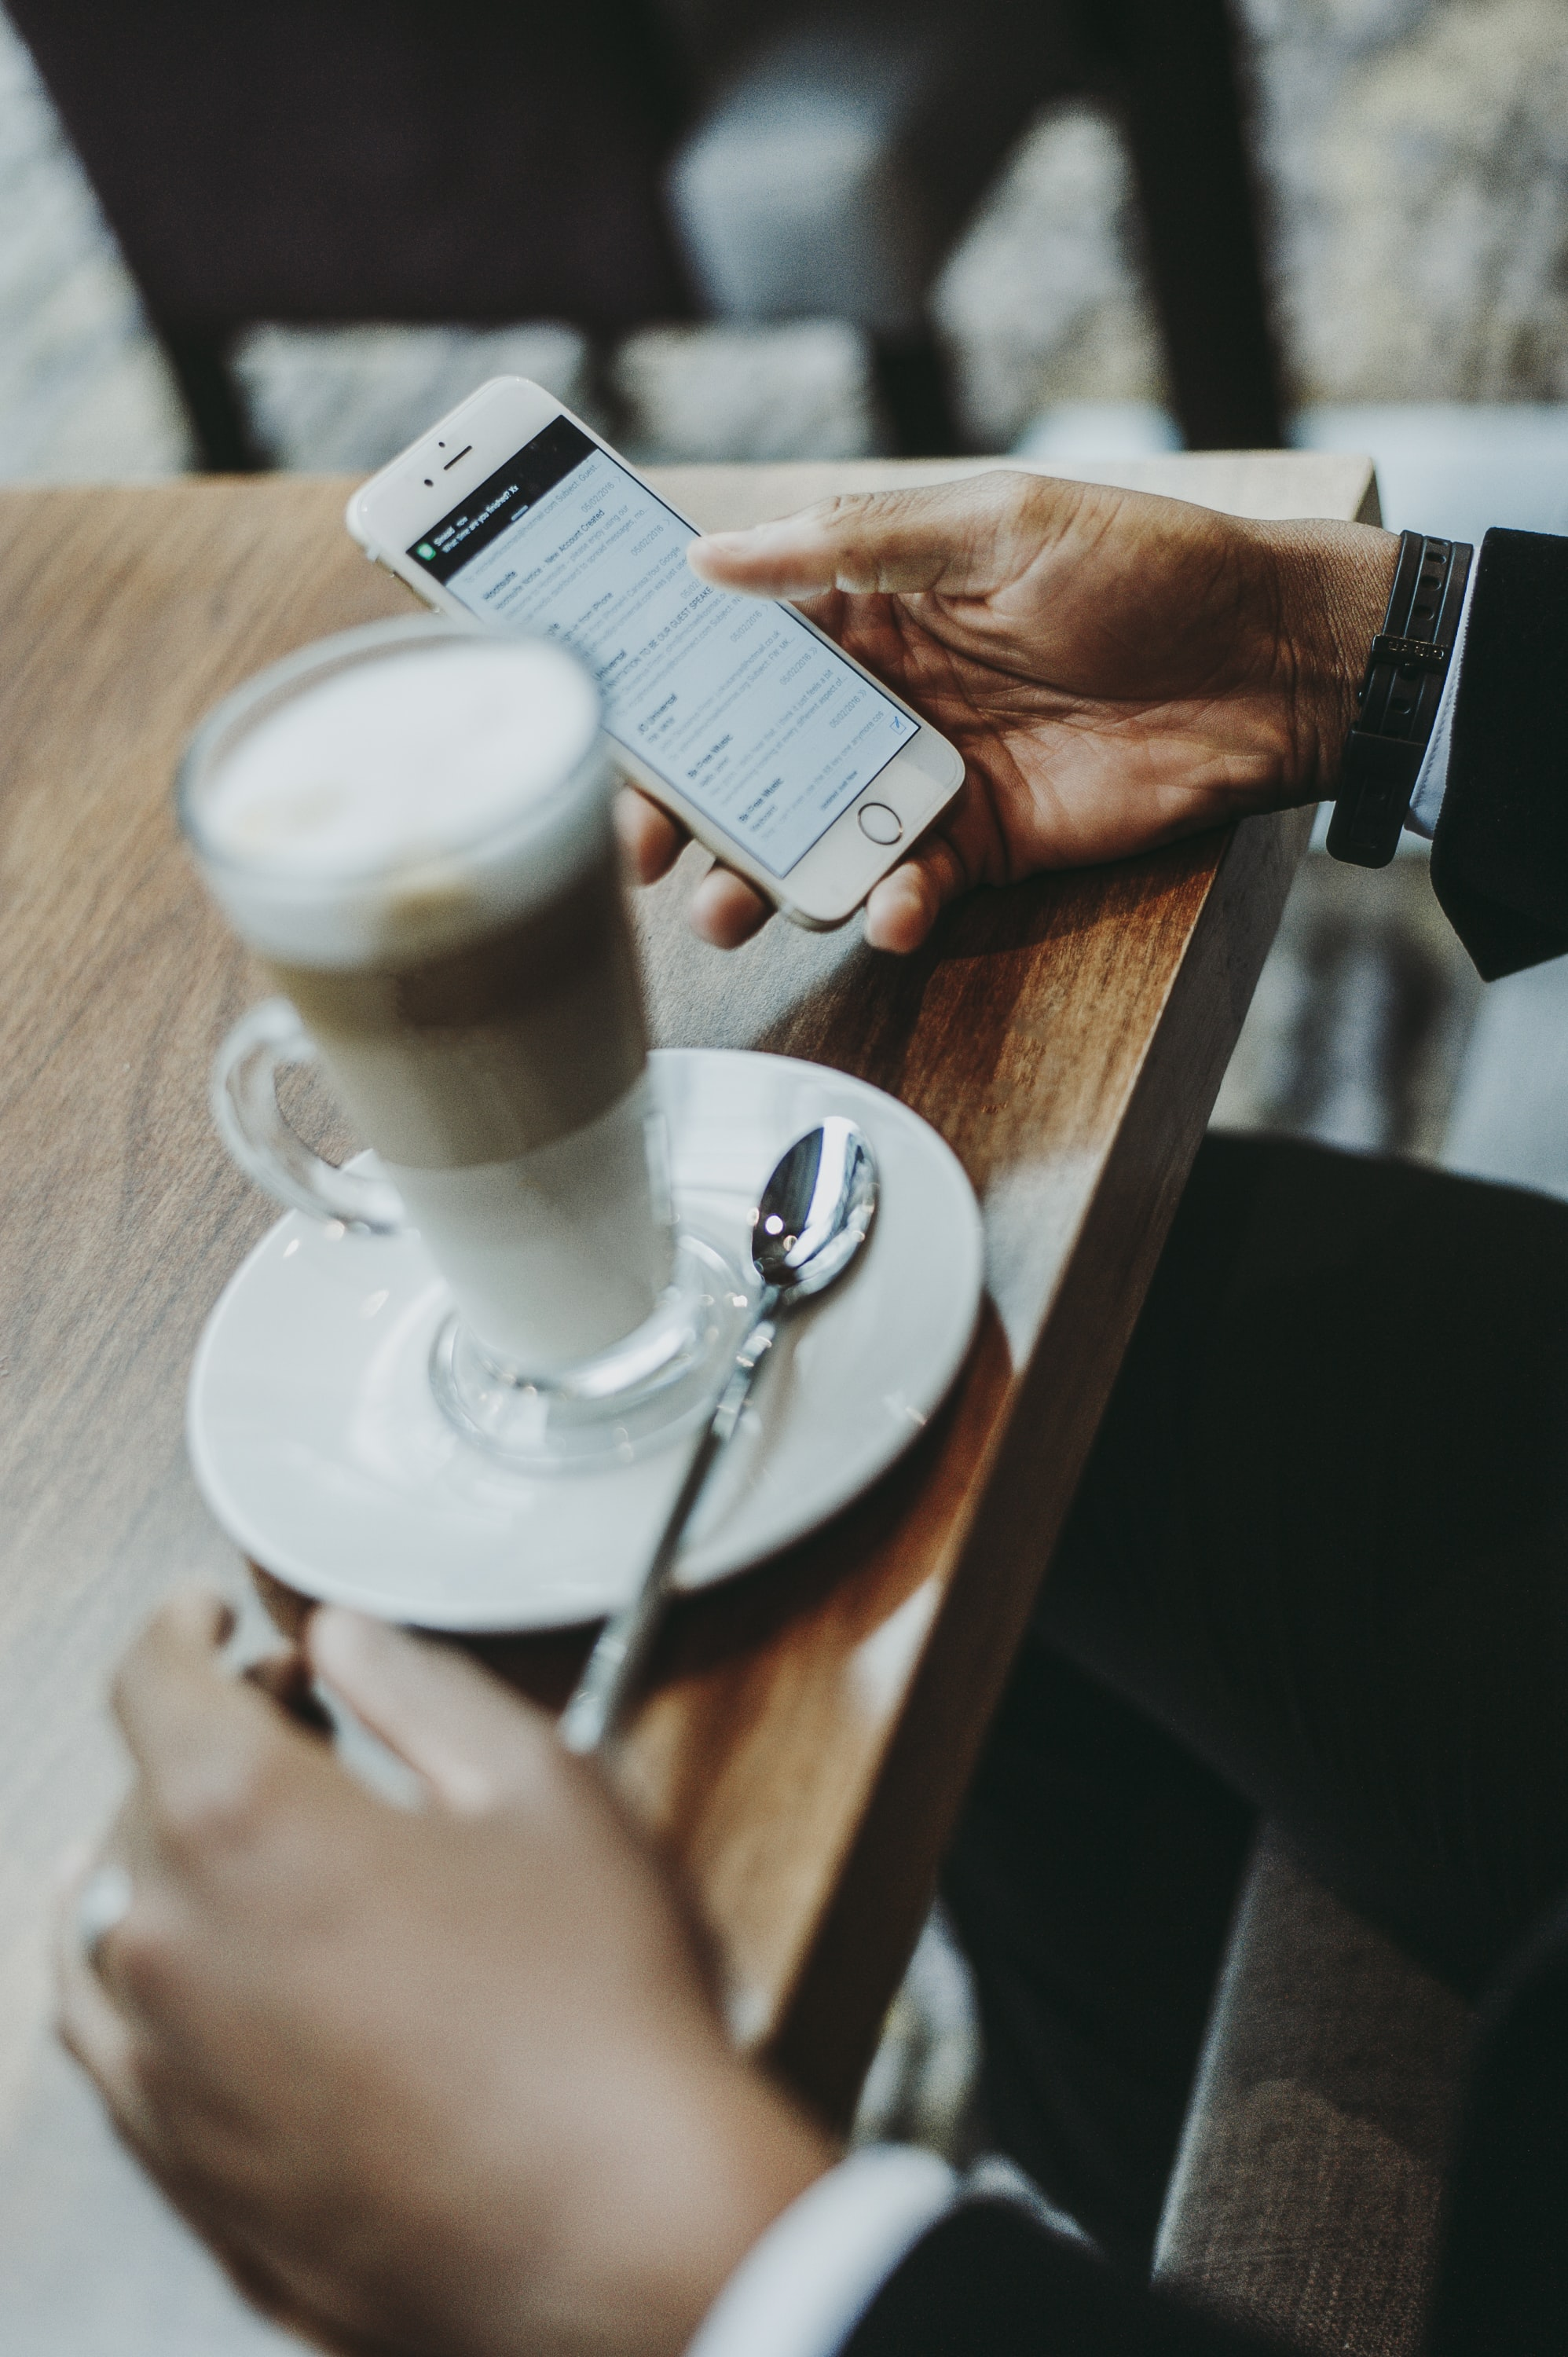 A man in a suit using an iPhone while sitting over a tall coffee